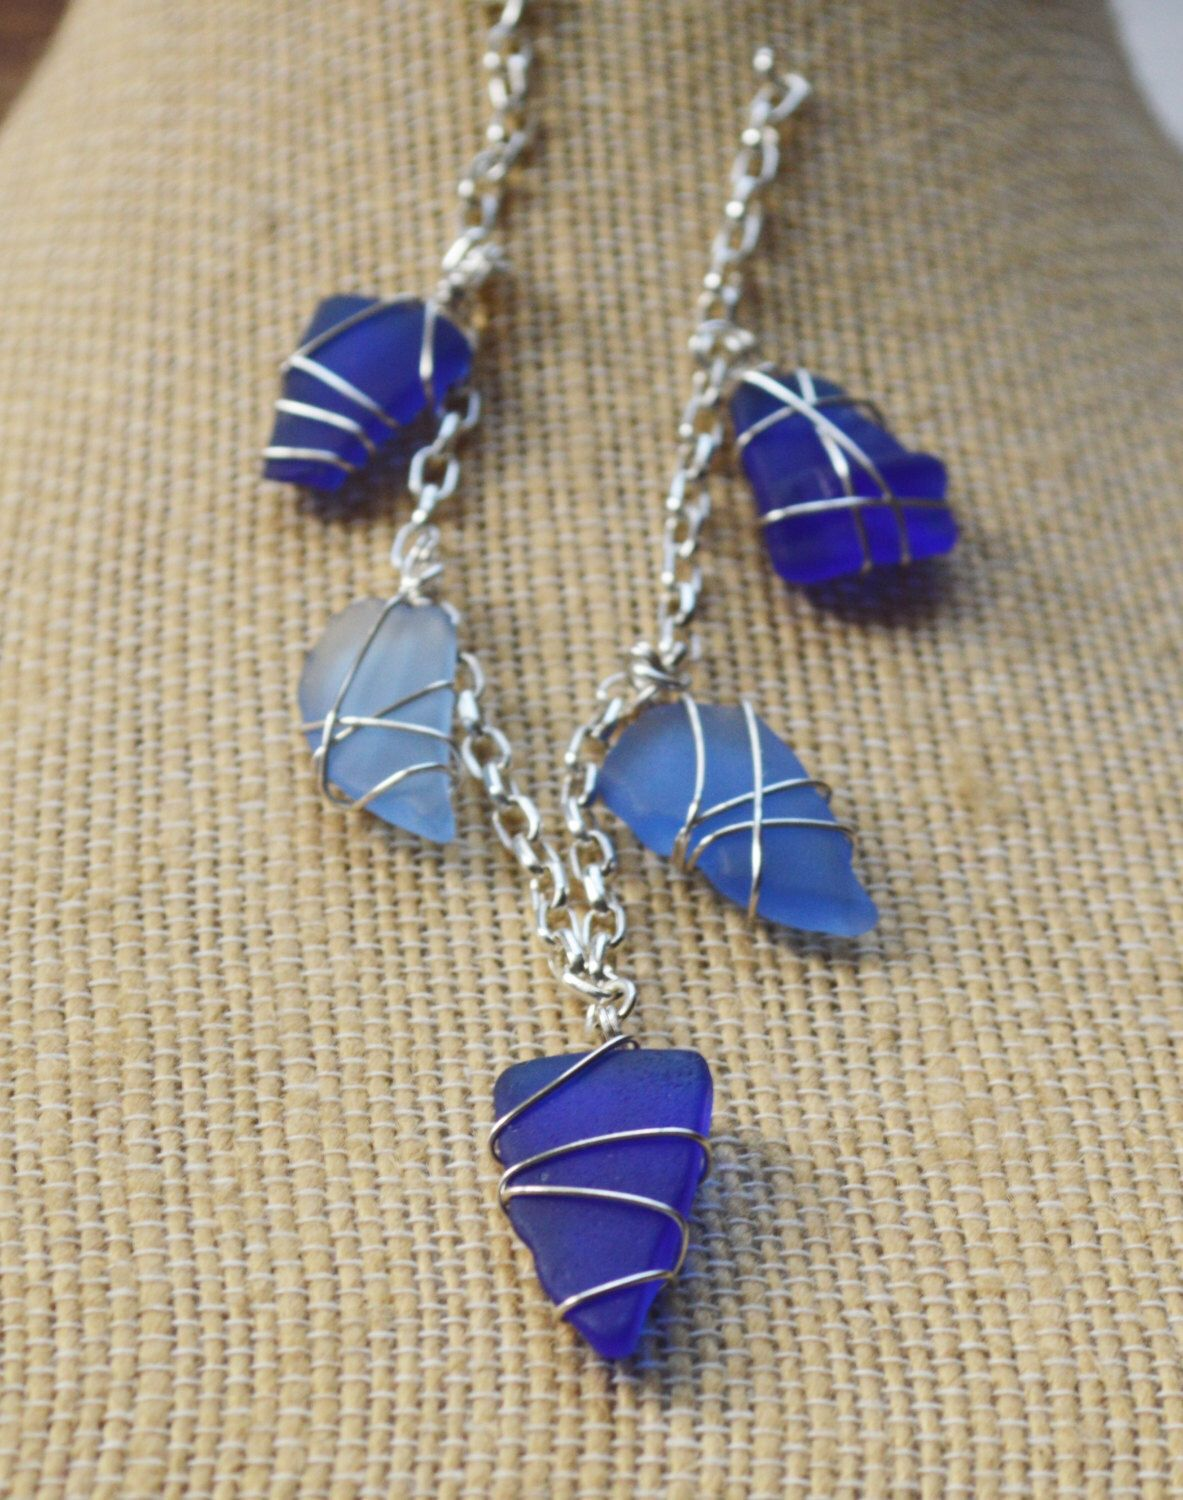 Cobalt Blue Sea Glass Wire Wrapped Bracelet 8 inches, Beautiful Blue Mermaid Jewelry, Christmas present for Beach Lover, Mermaid by GulfCoastTreasure on Etsy https://www.etsy.com/listing/466176440/cobalt-blue-sea-glass-wire-wrapped